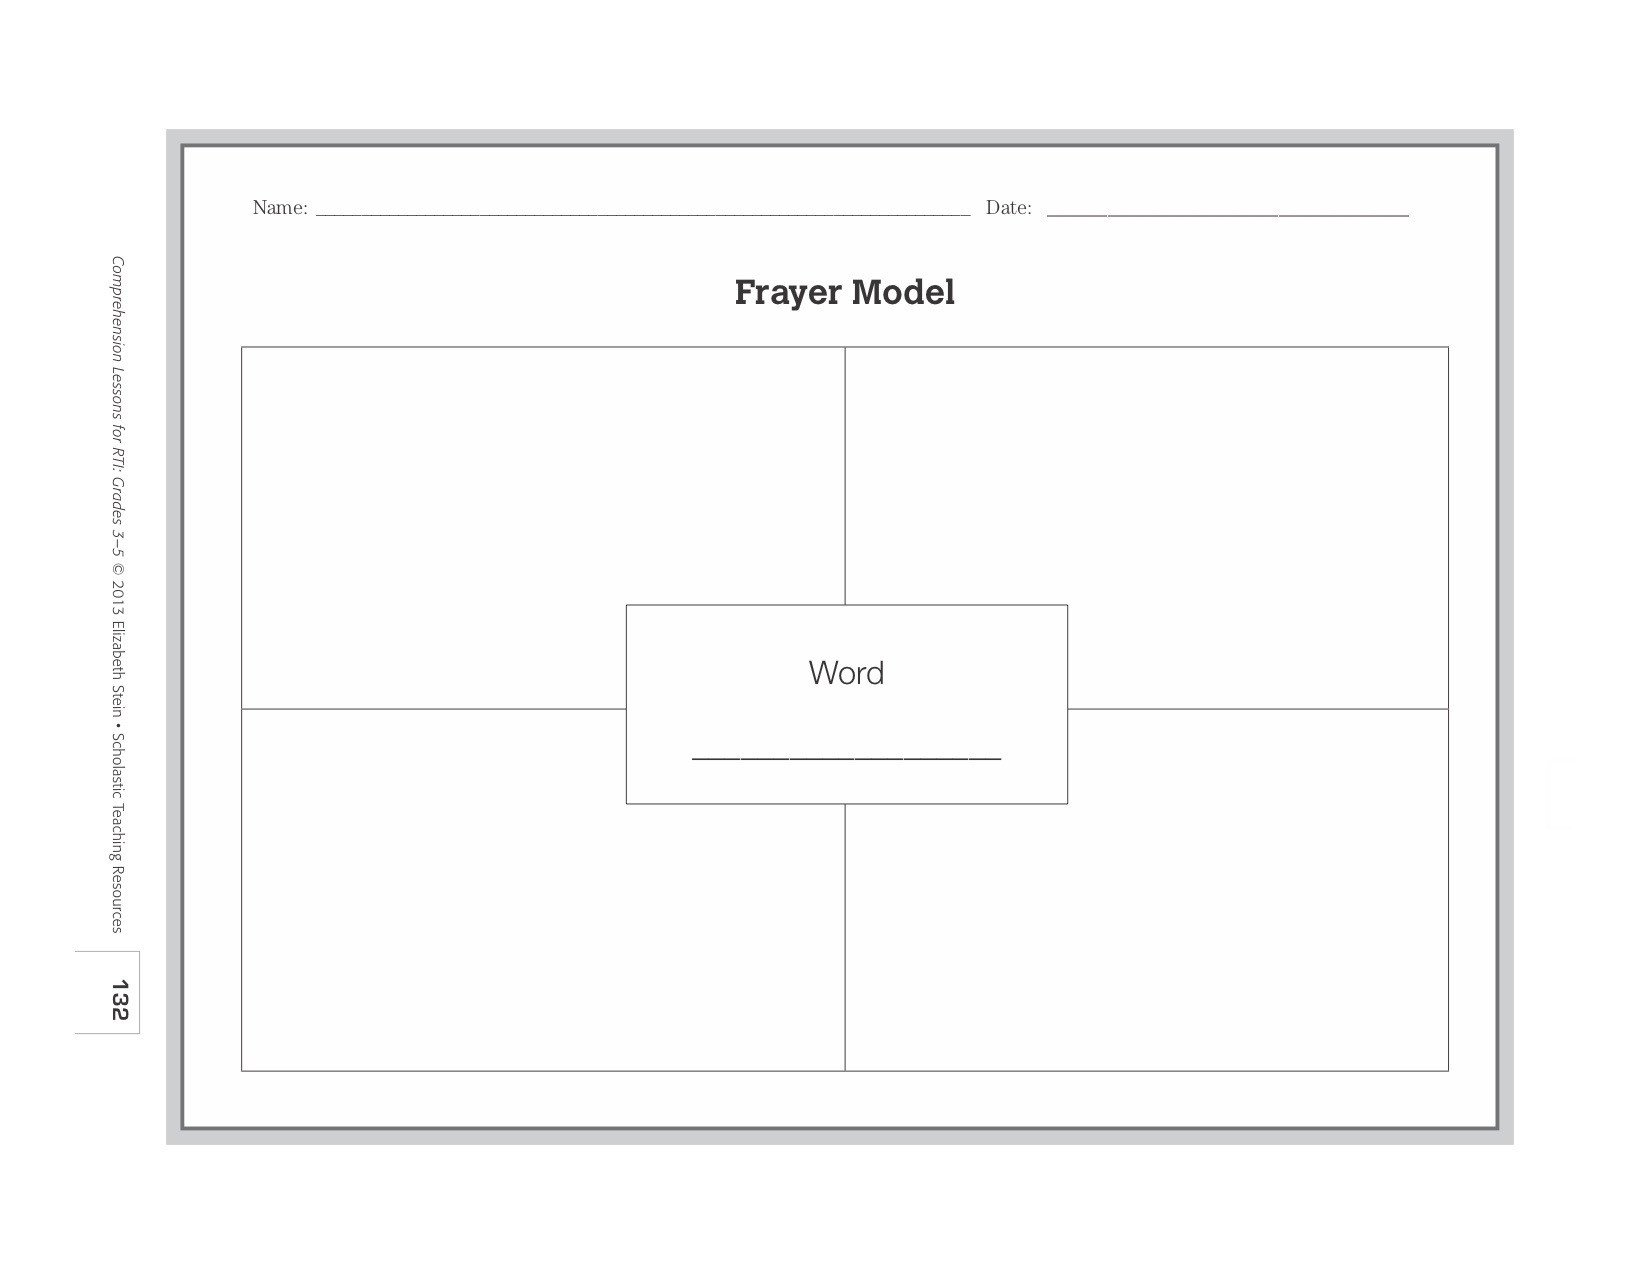 Frayer Model Template Word Content area Literacy Focusing On Vocabulary